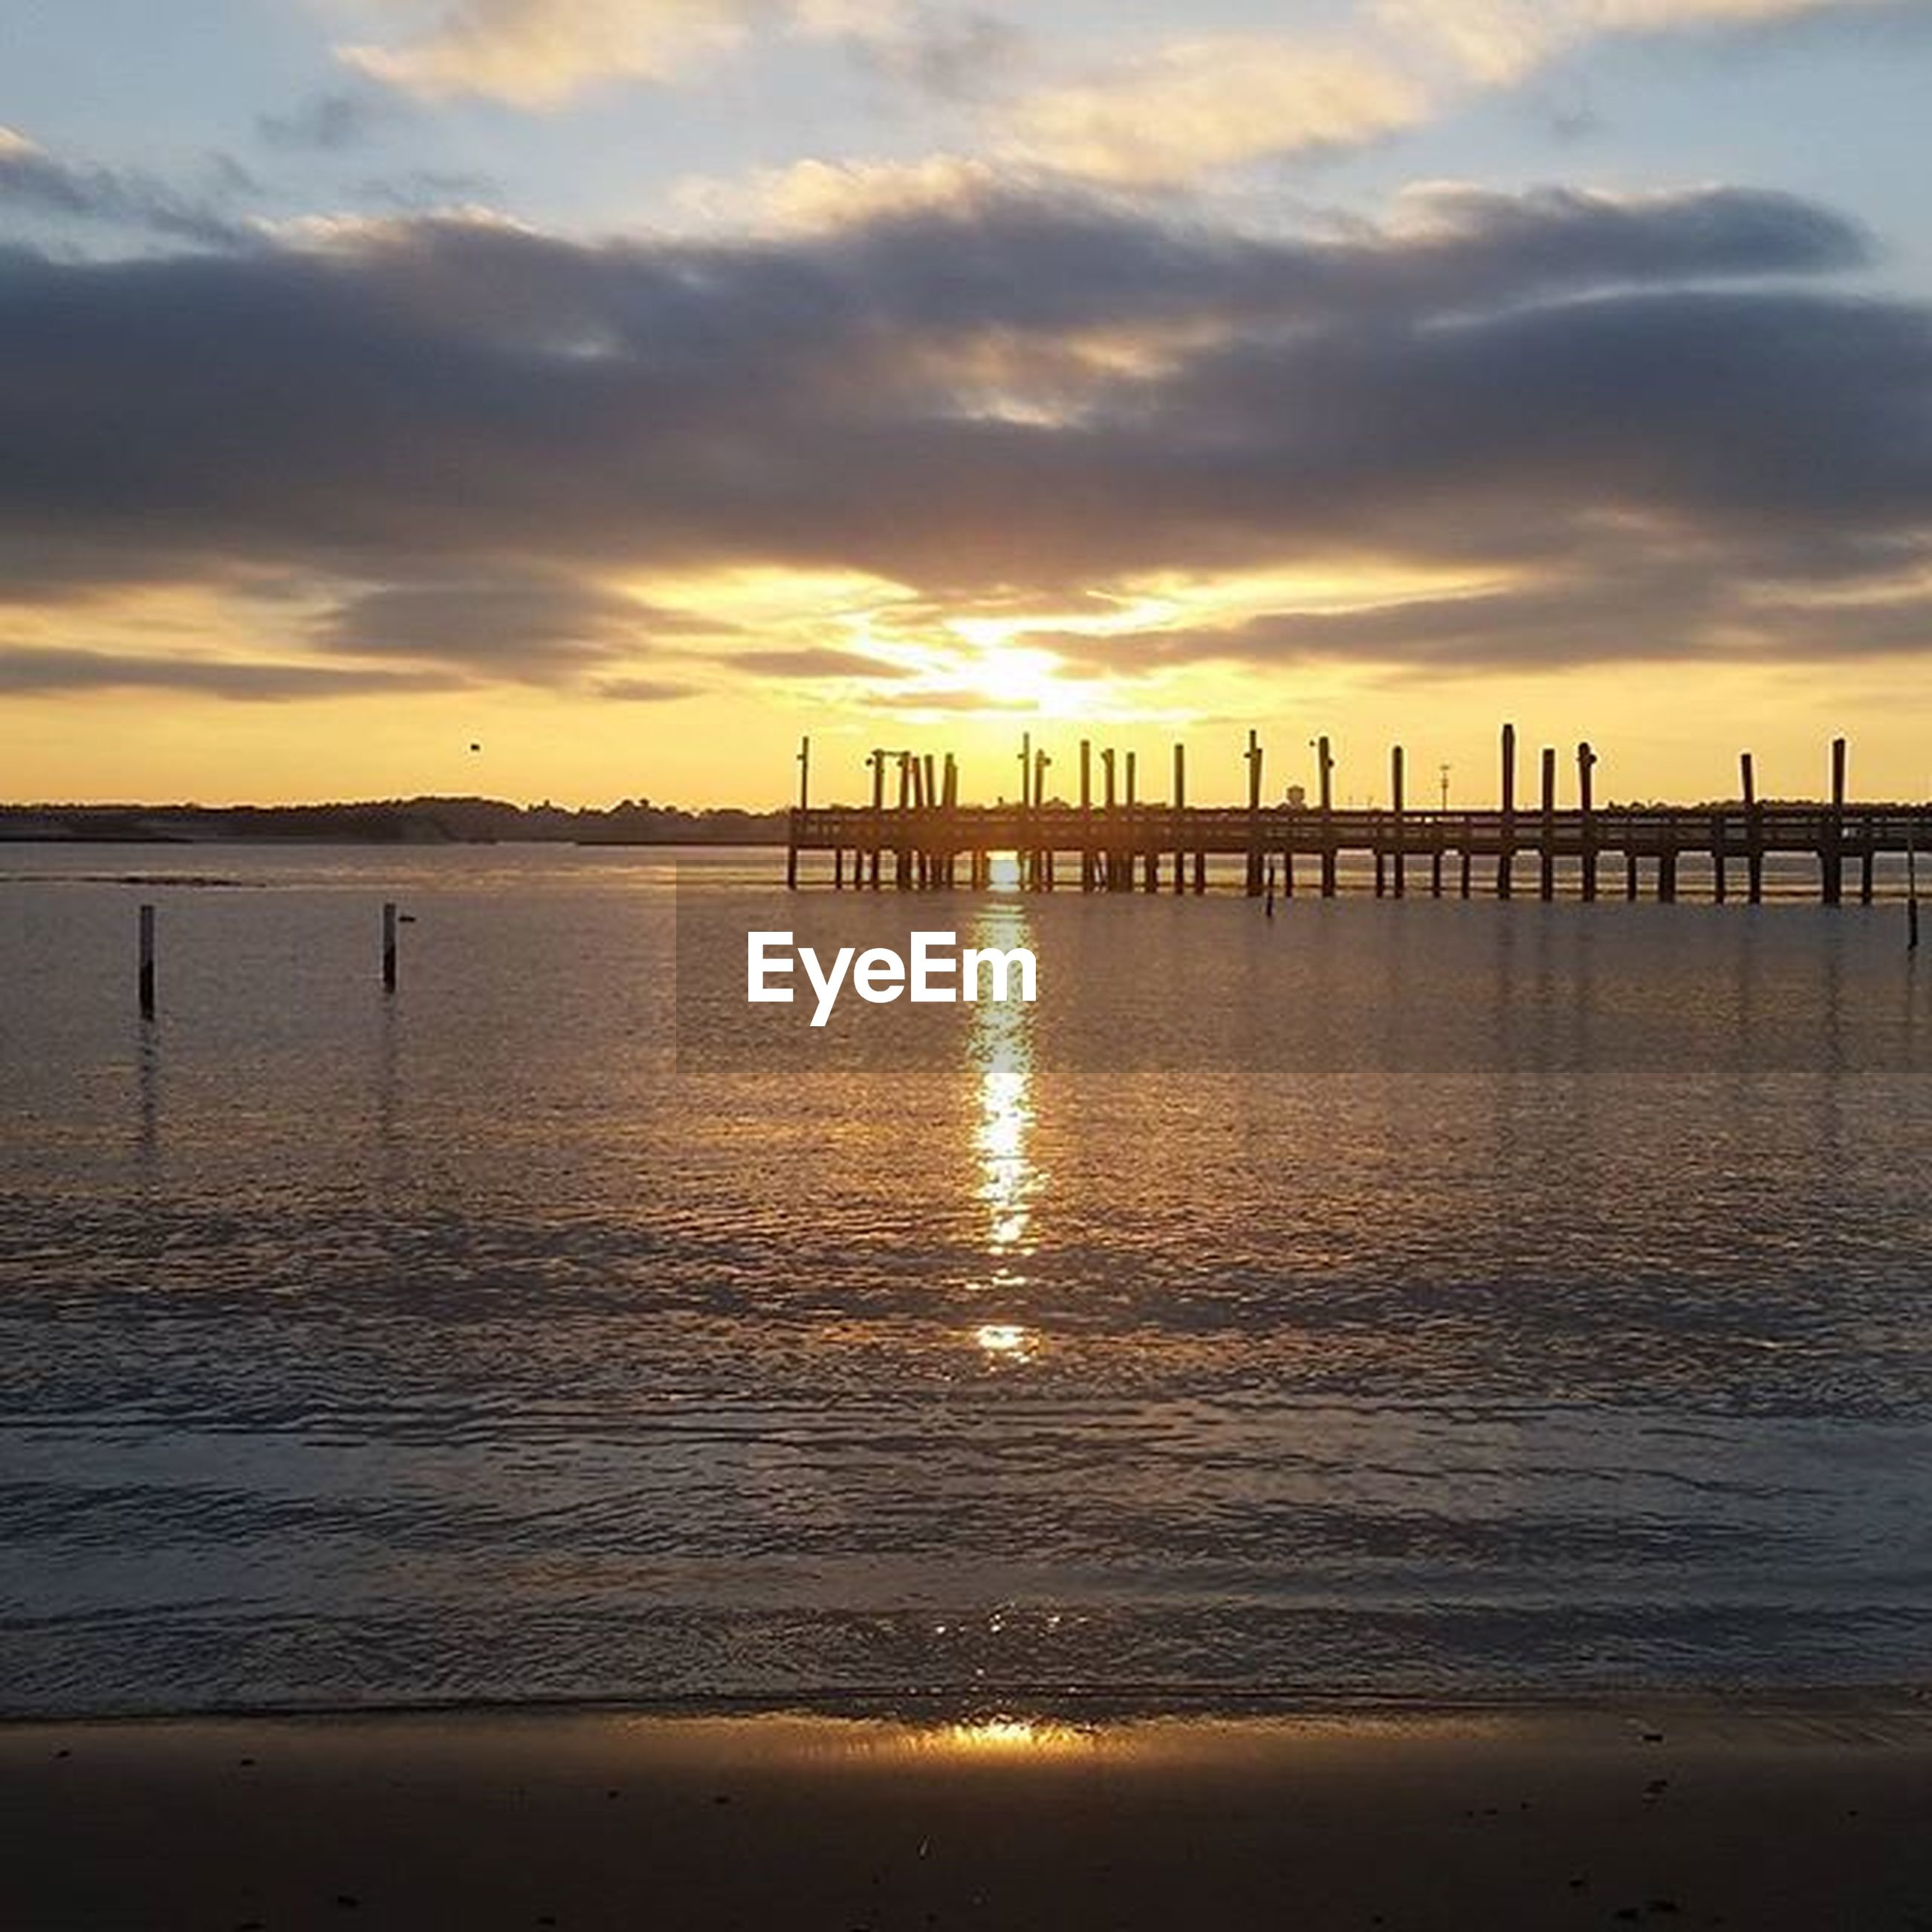 sunset, water, sea, sky, scenics, tranquil scene, tranquility, beauty in nature, pier, beach, silhouette, cloud - sky, nature, orange color, idyllic, reflection, wooden post, built structure, shore, horizon over water